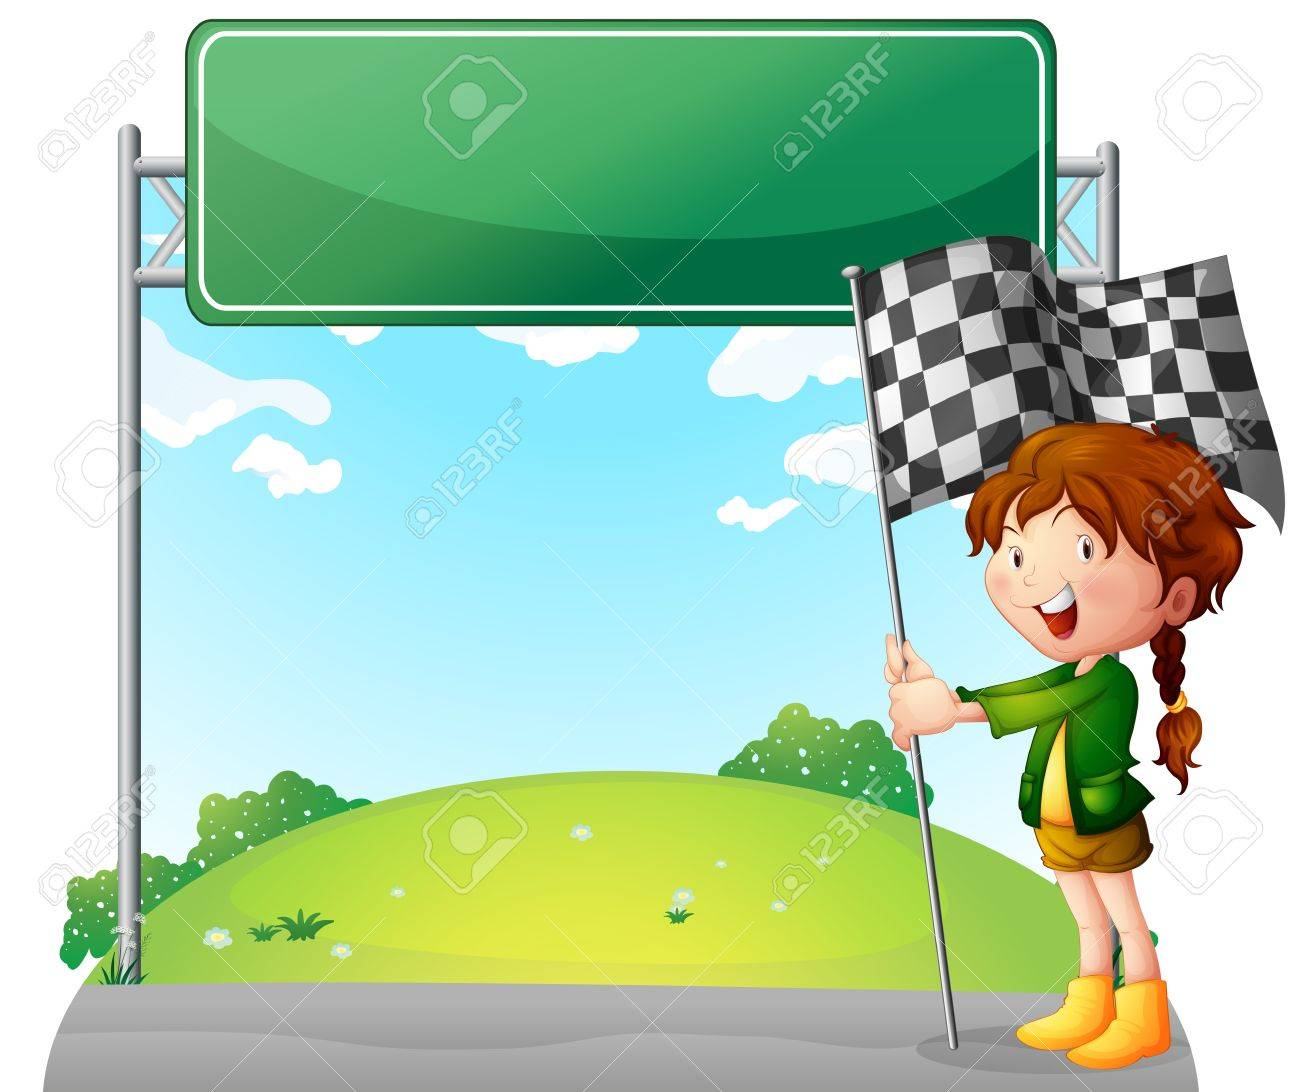 Illustration of a girl holding a racing flag on a white background Stock Vector - 18458629